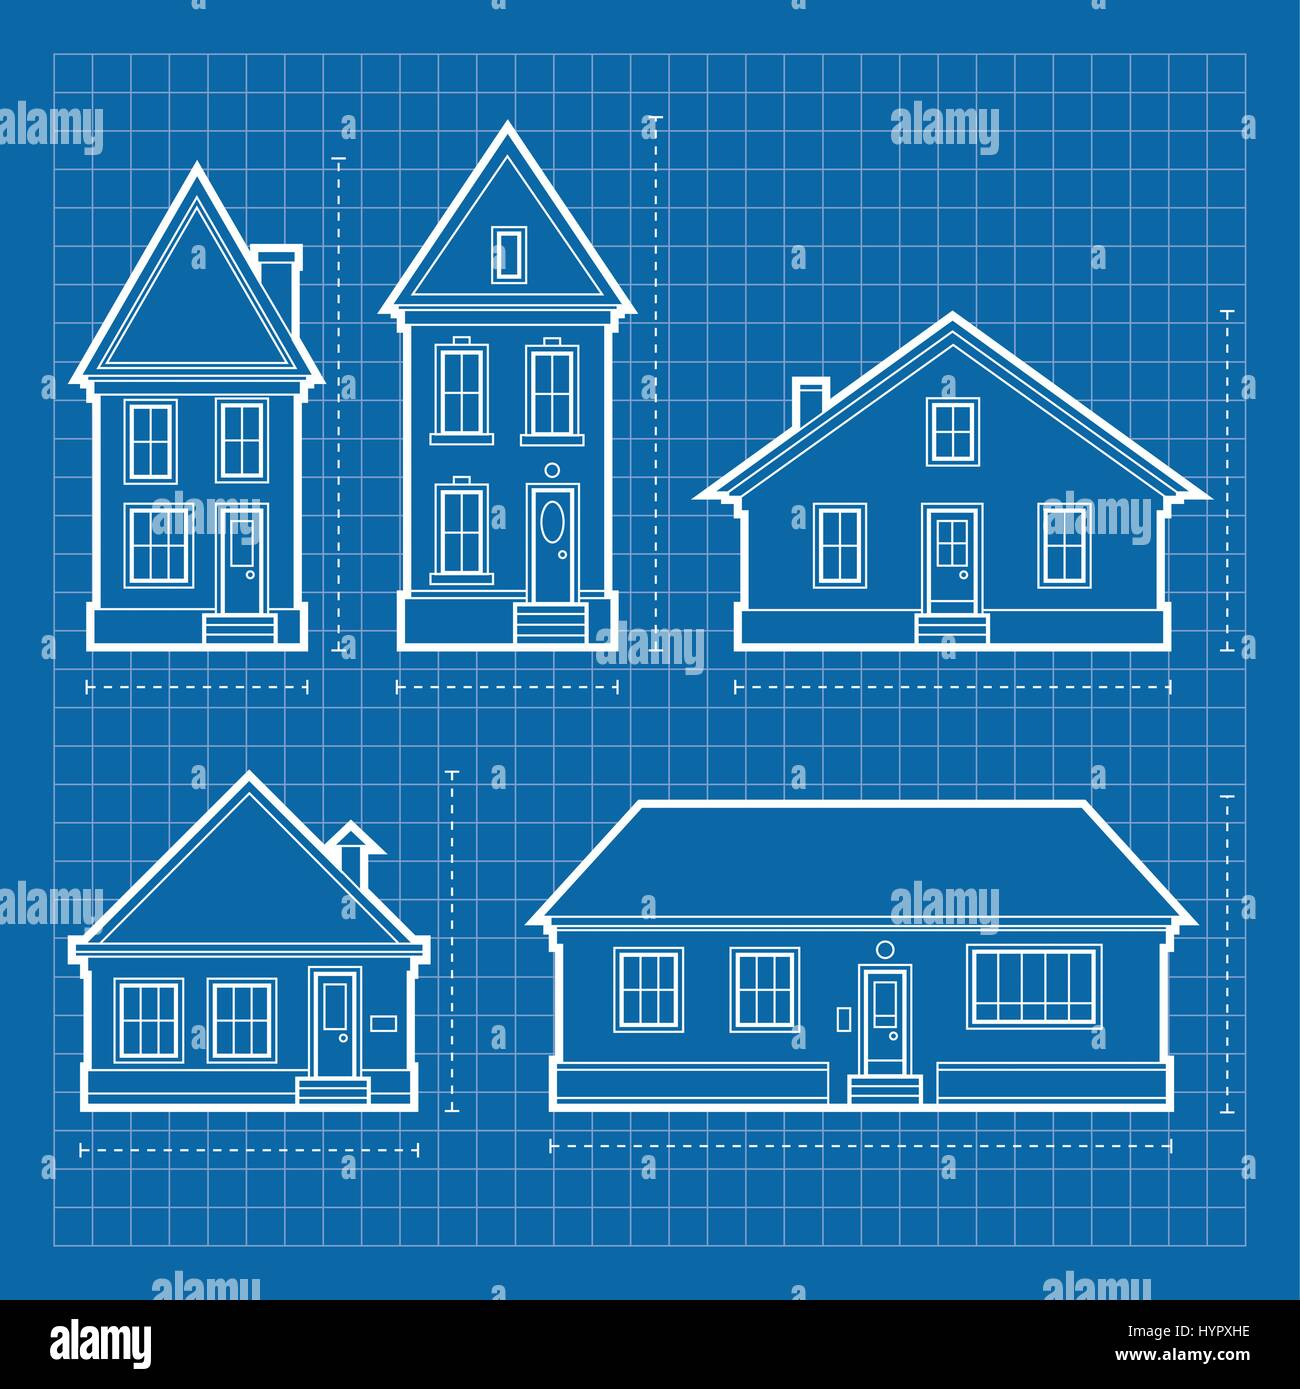 Blueprint diagrams of a variety of residential house types stock blueprint diagrams of a variety of residential house types malvernweather Gallery